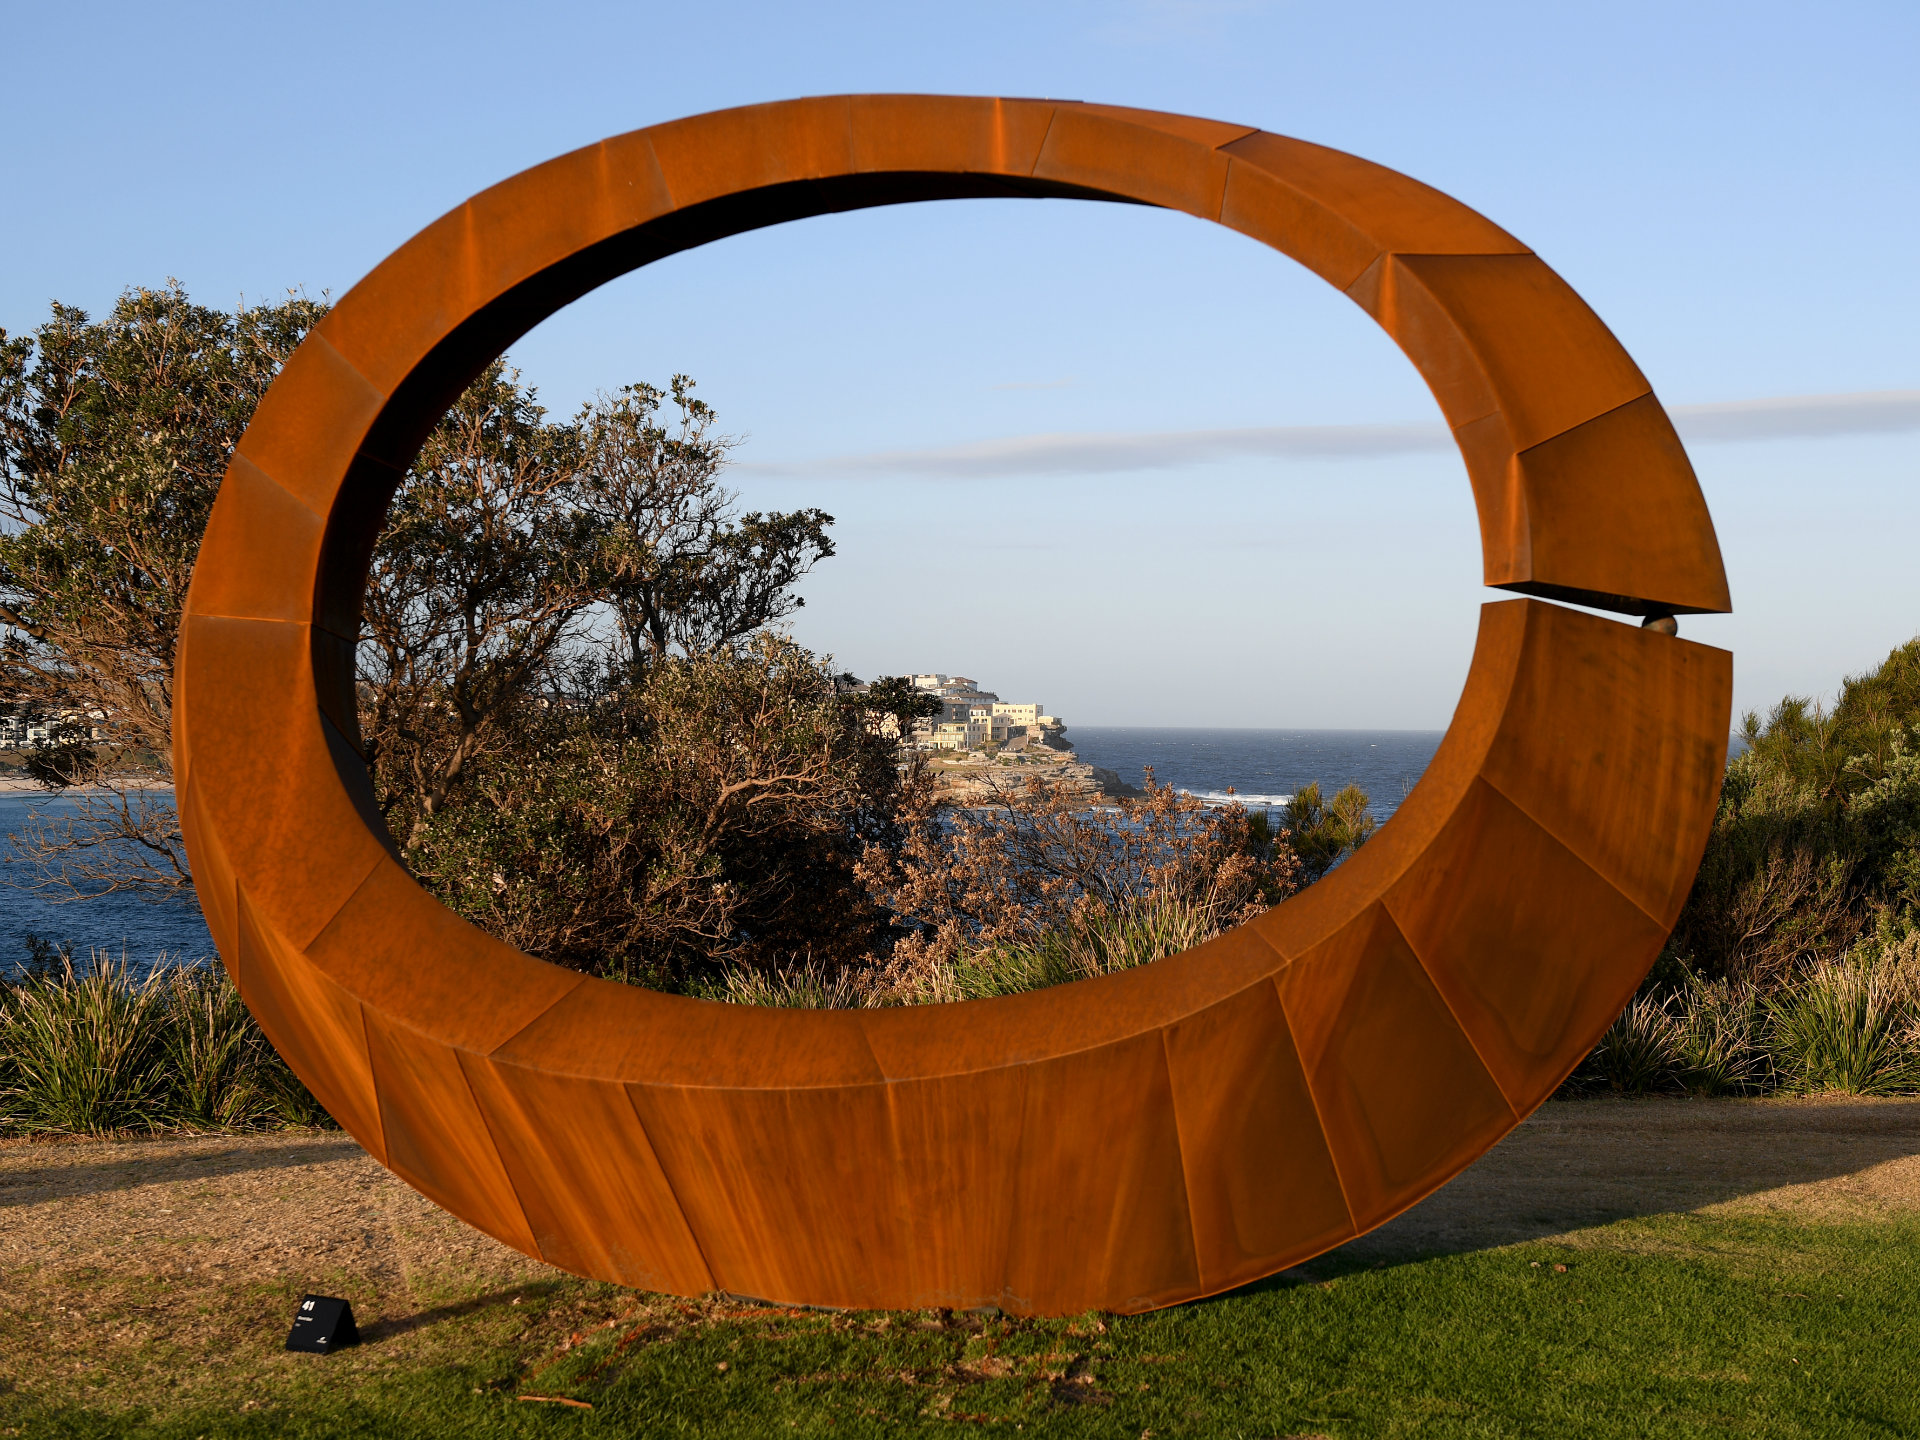 Winner of 2017 Sculpture by the Sea exhibition announced